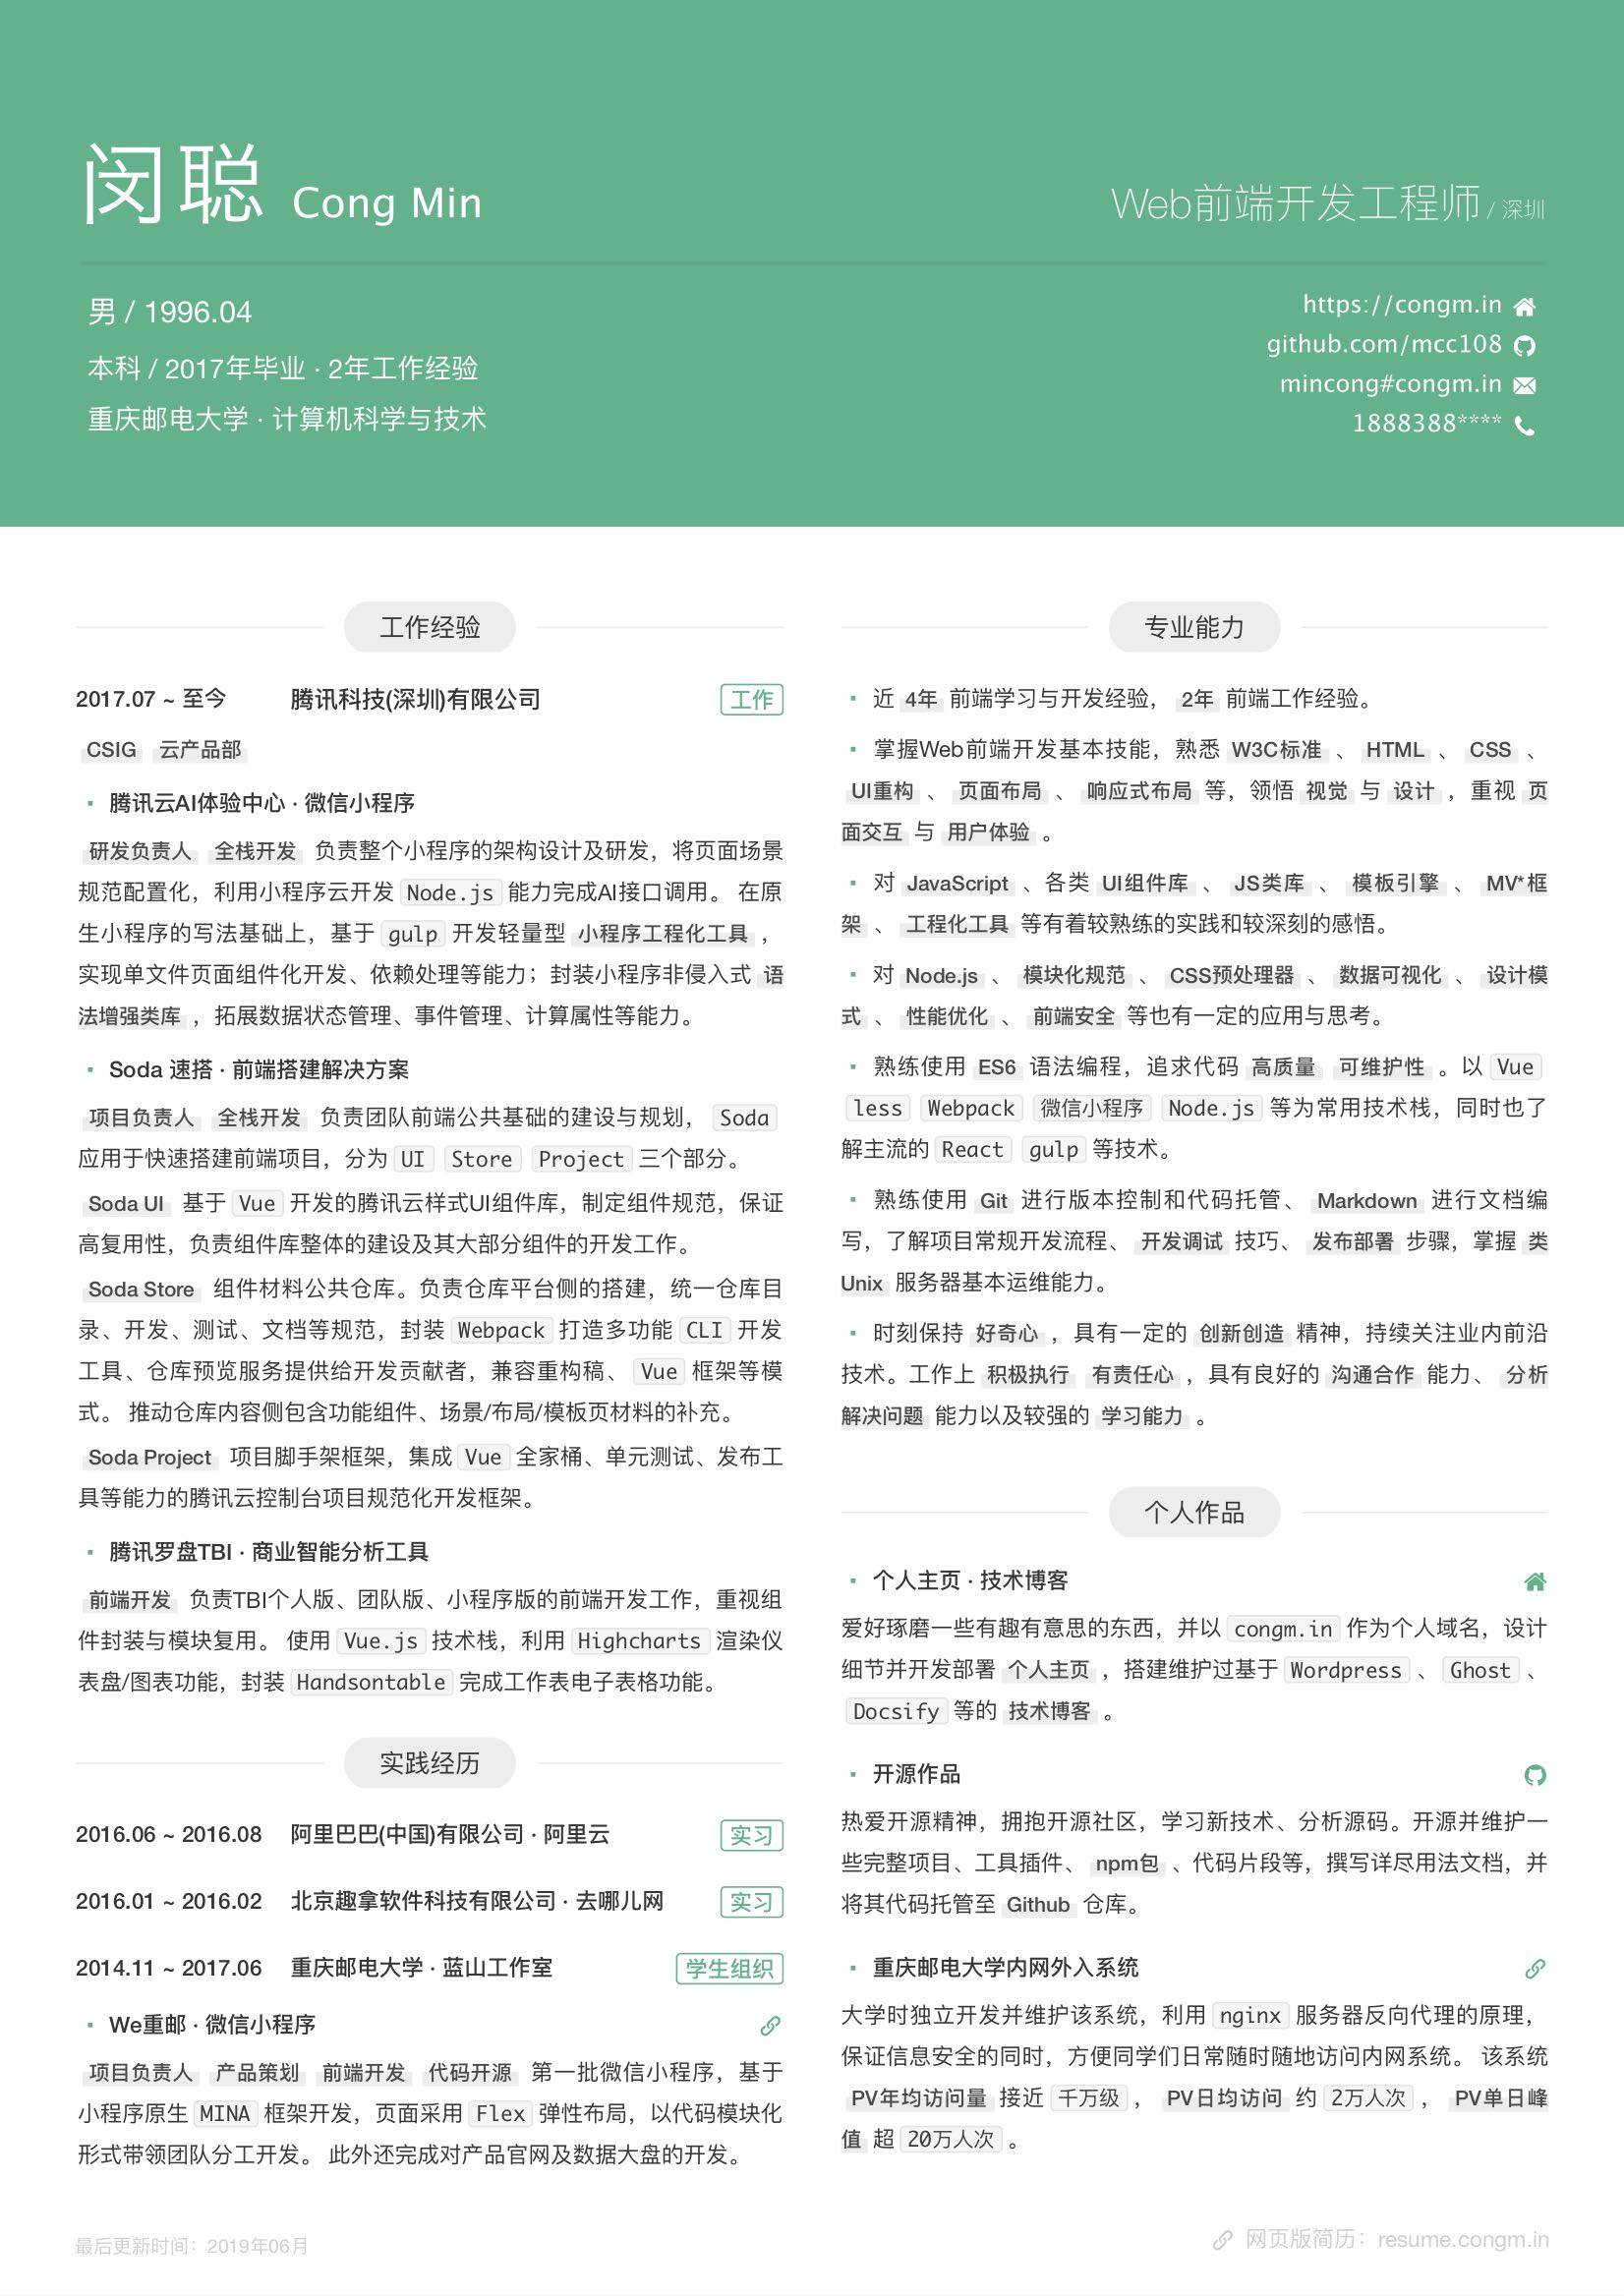 Sample Resume With Github Github Mcc108 Resume Resume Congm In 我的简历